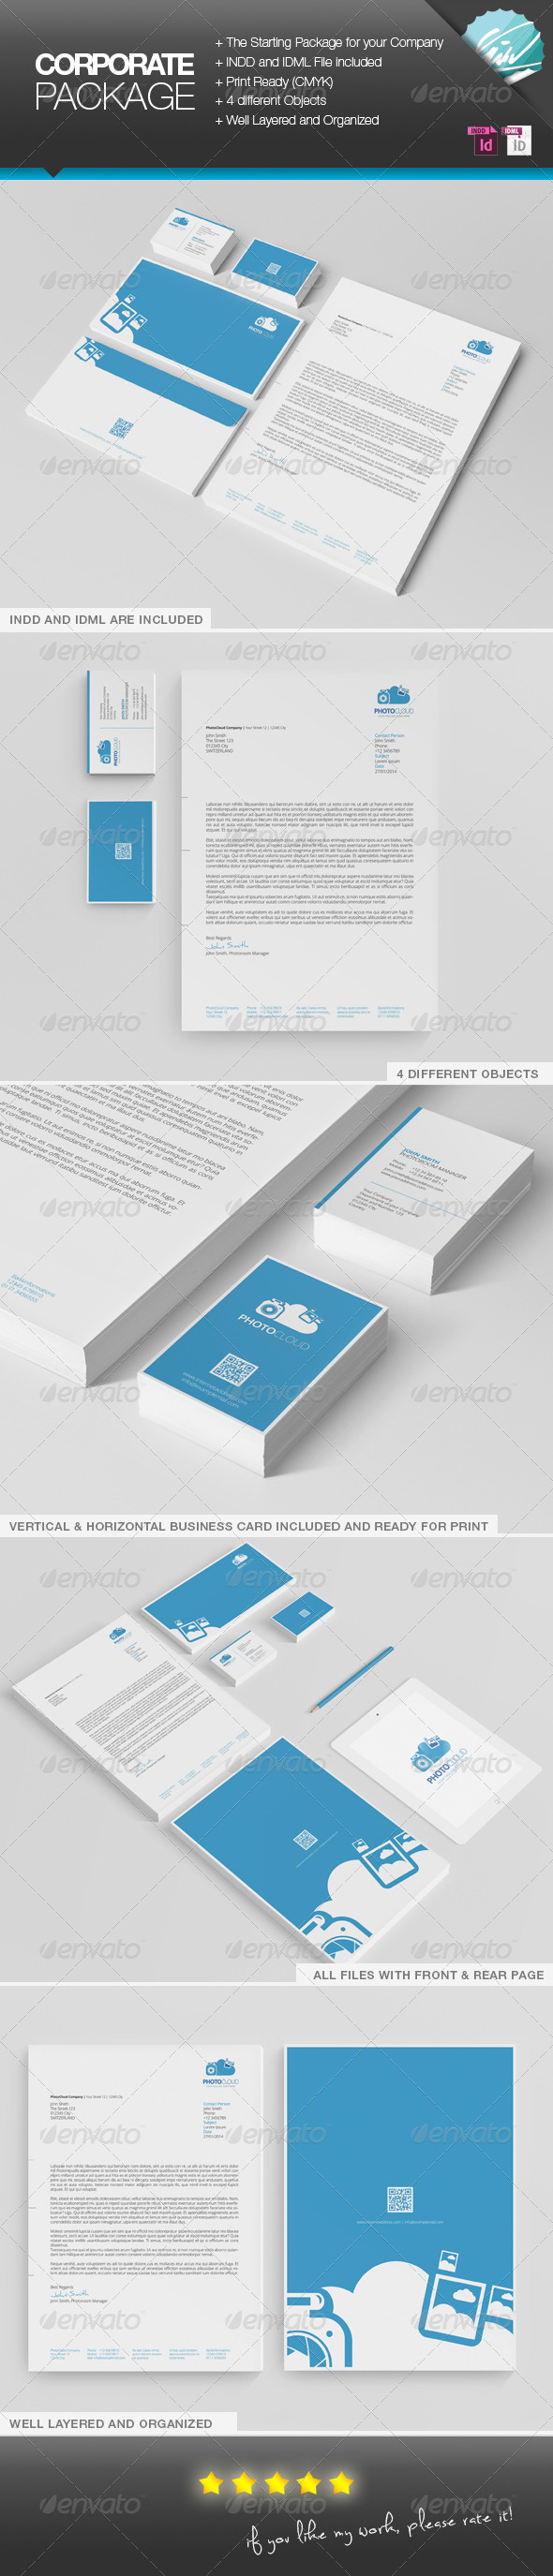 GraphicRiver PhotoCloud Corporate Print Package 6715326